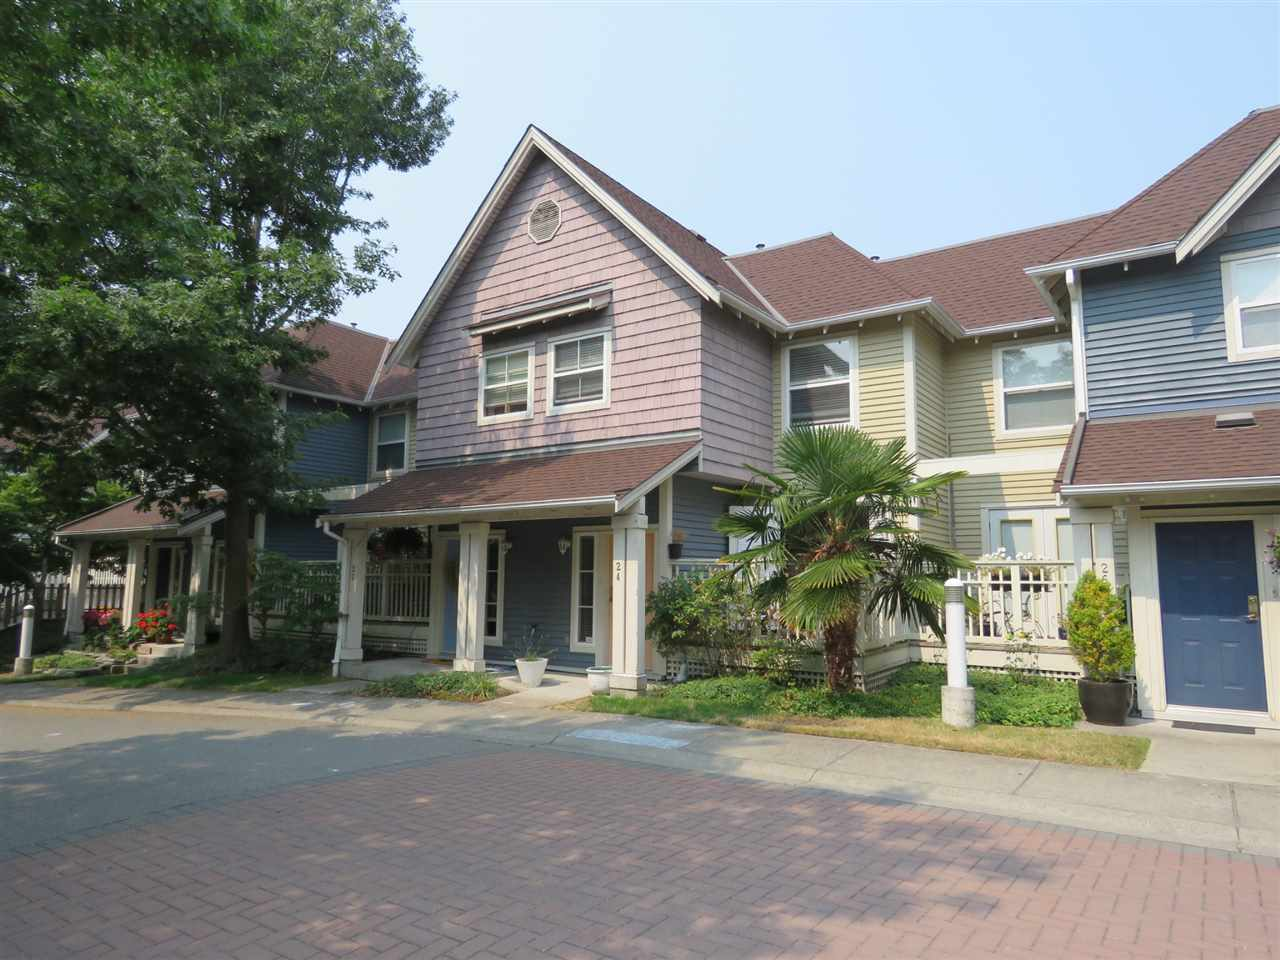 Main Photo: 24 1700 56 Street in Delta: Beach Grove Townhouse for sale (Tsawwassen)  : MLS® # R2195840